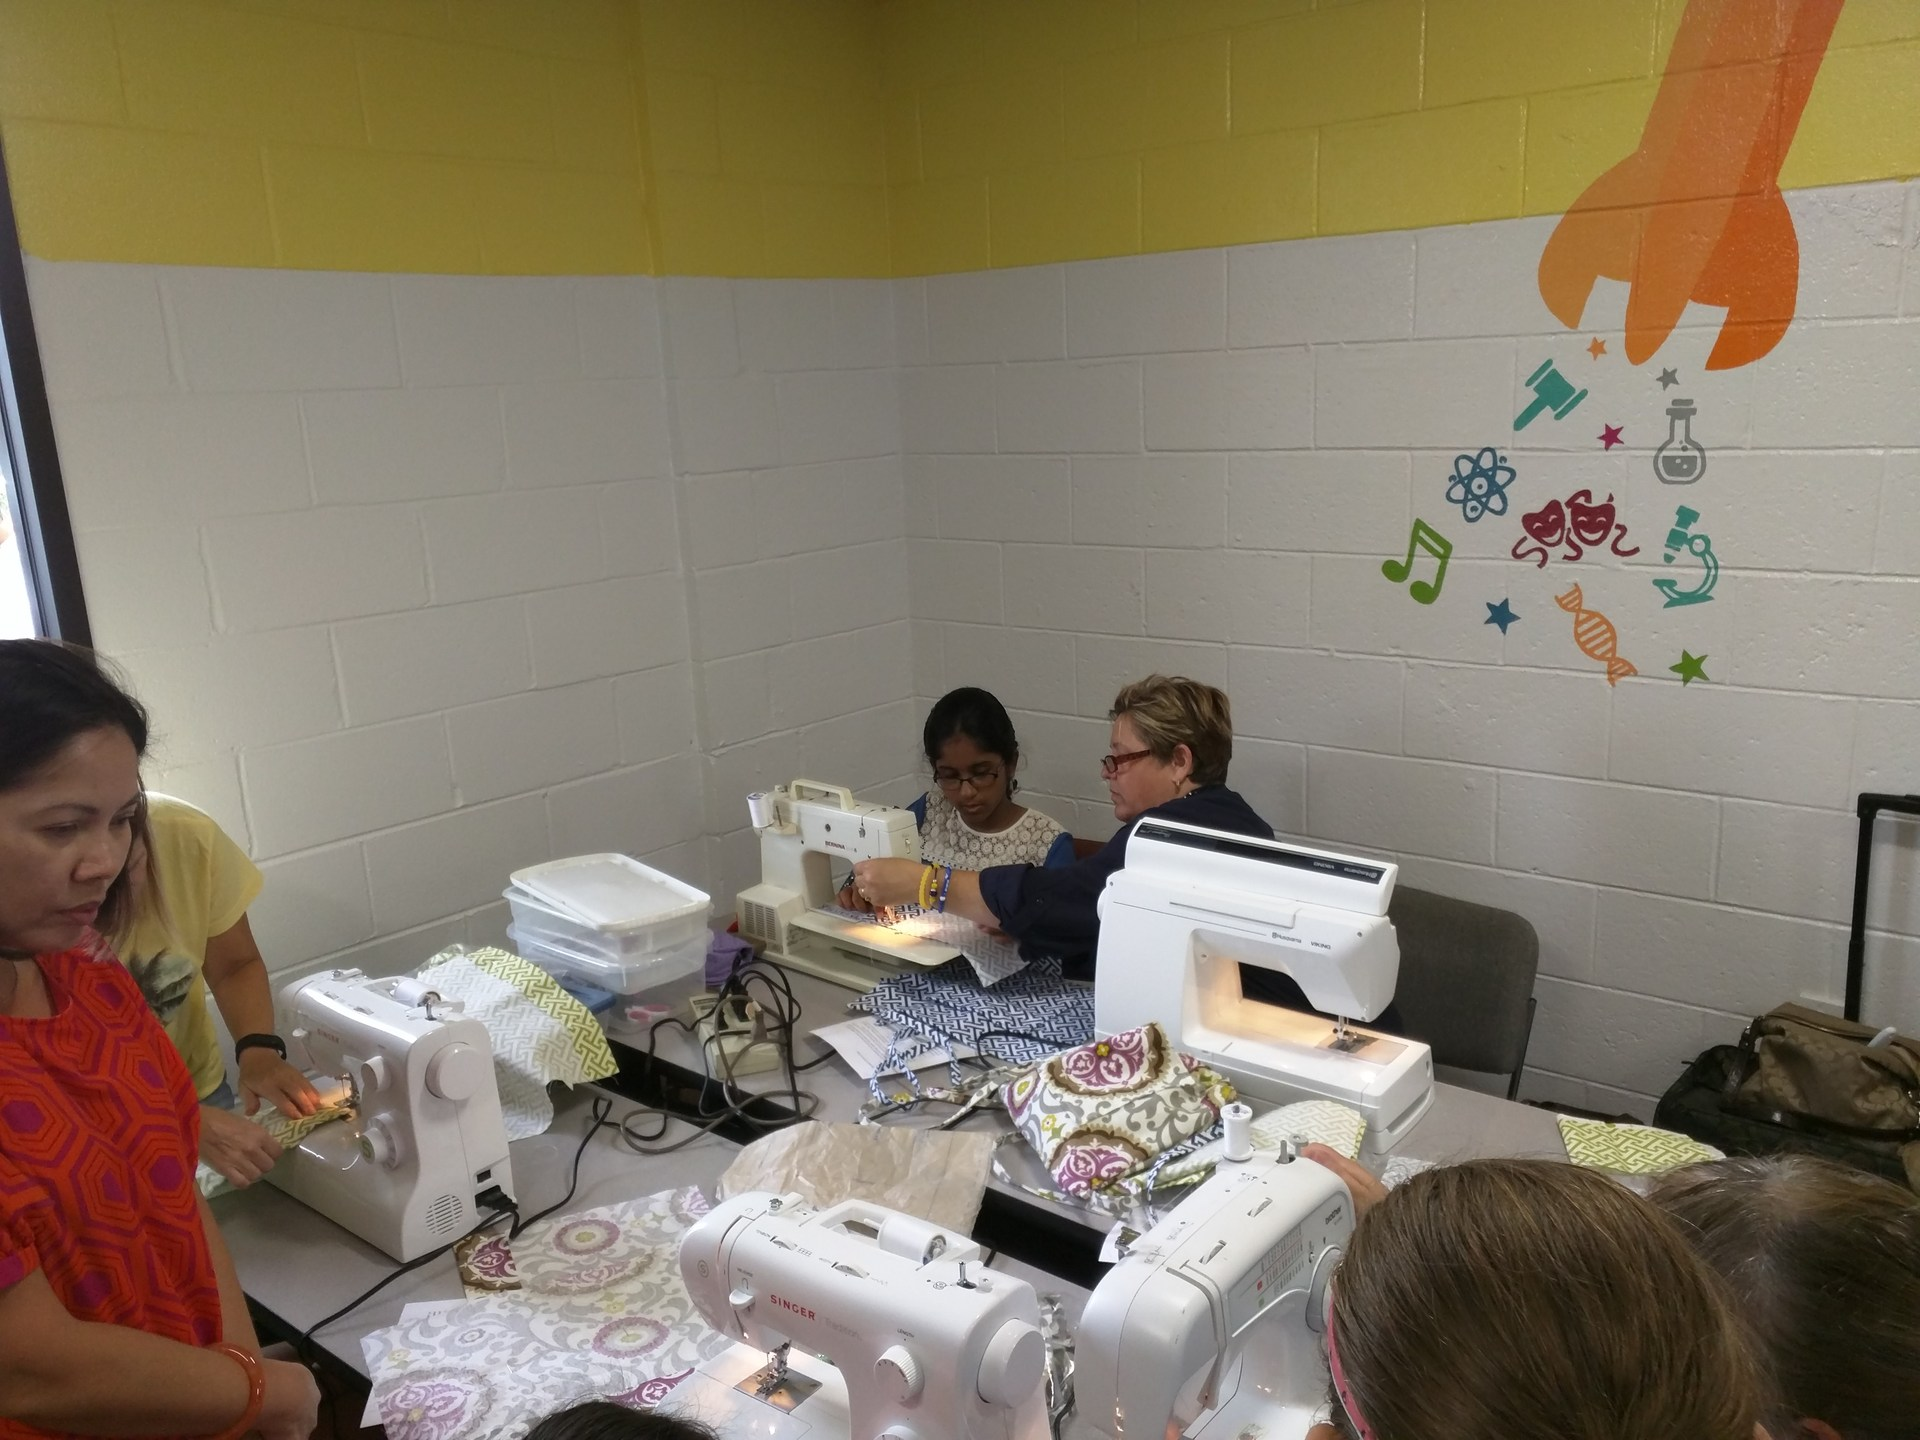 Learning to sew at Steam Camp.